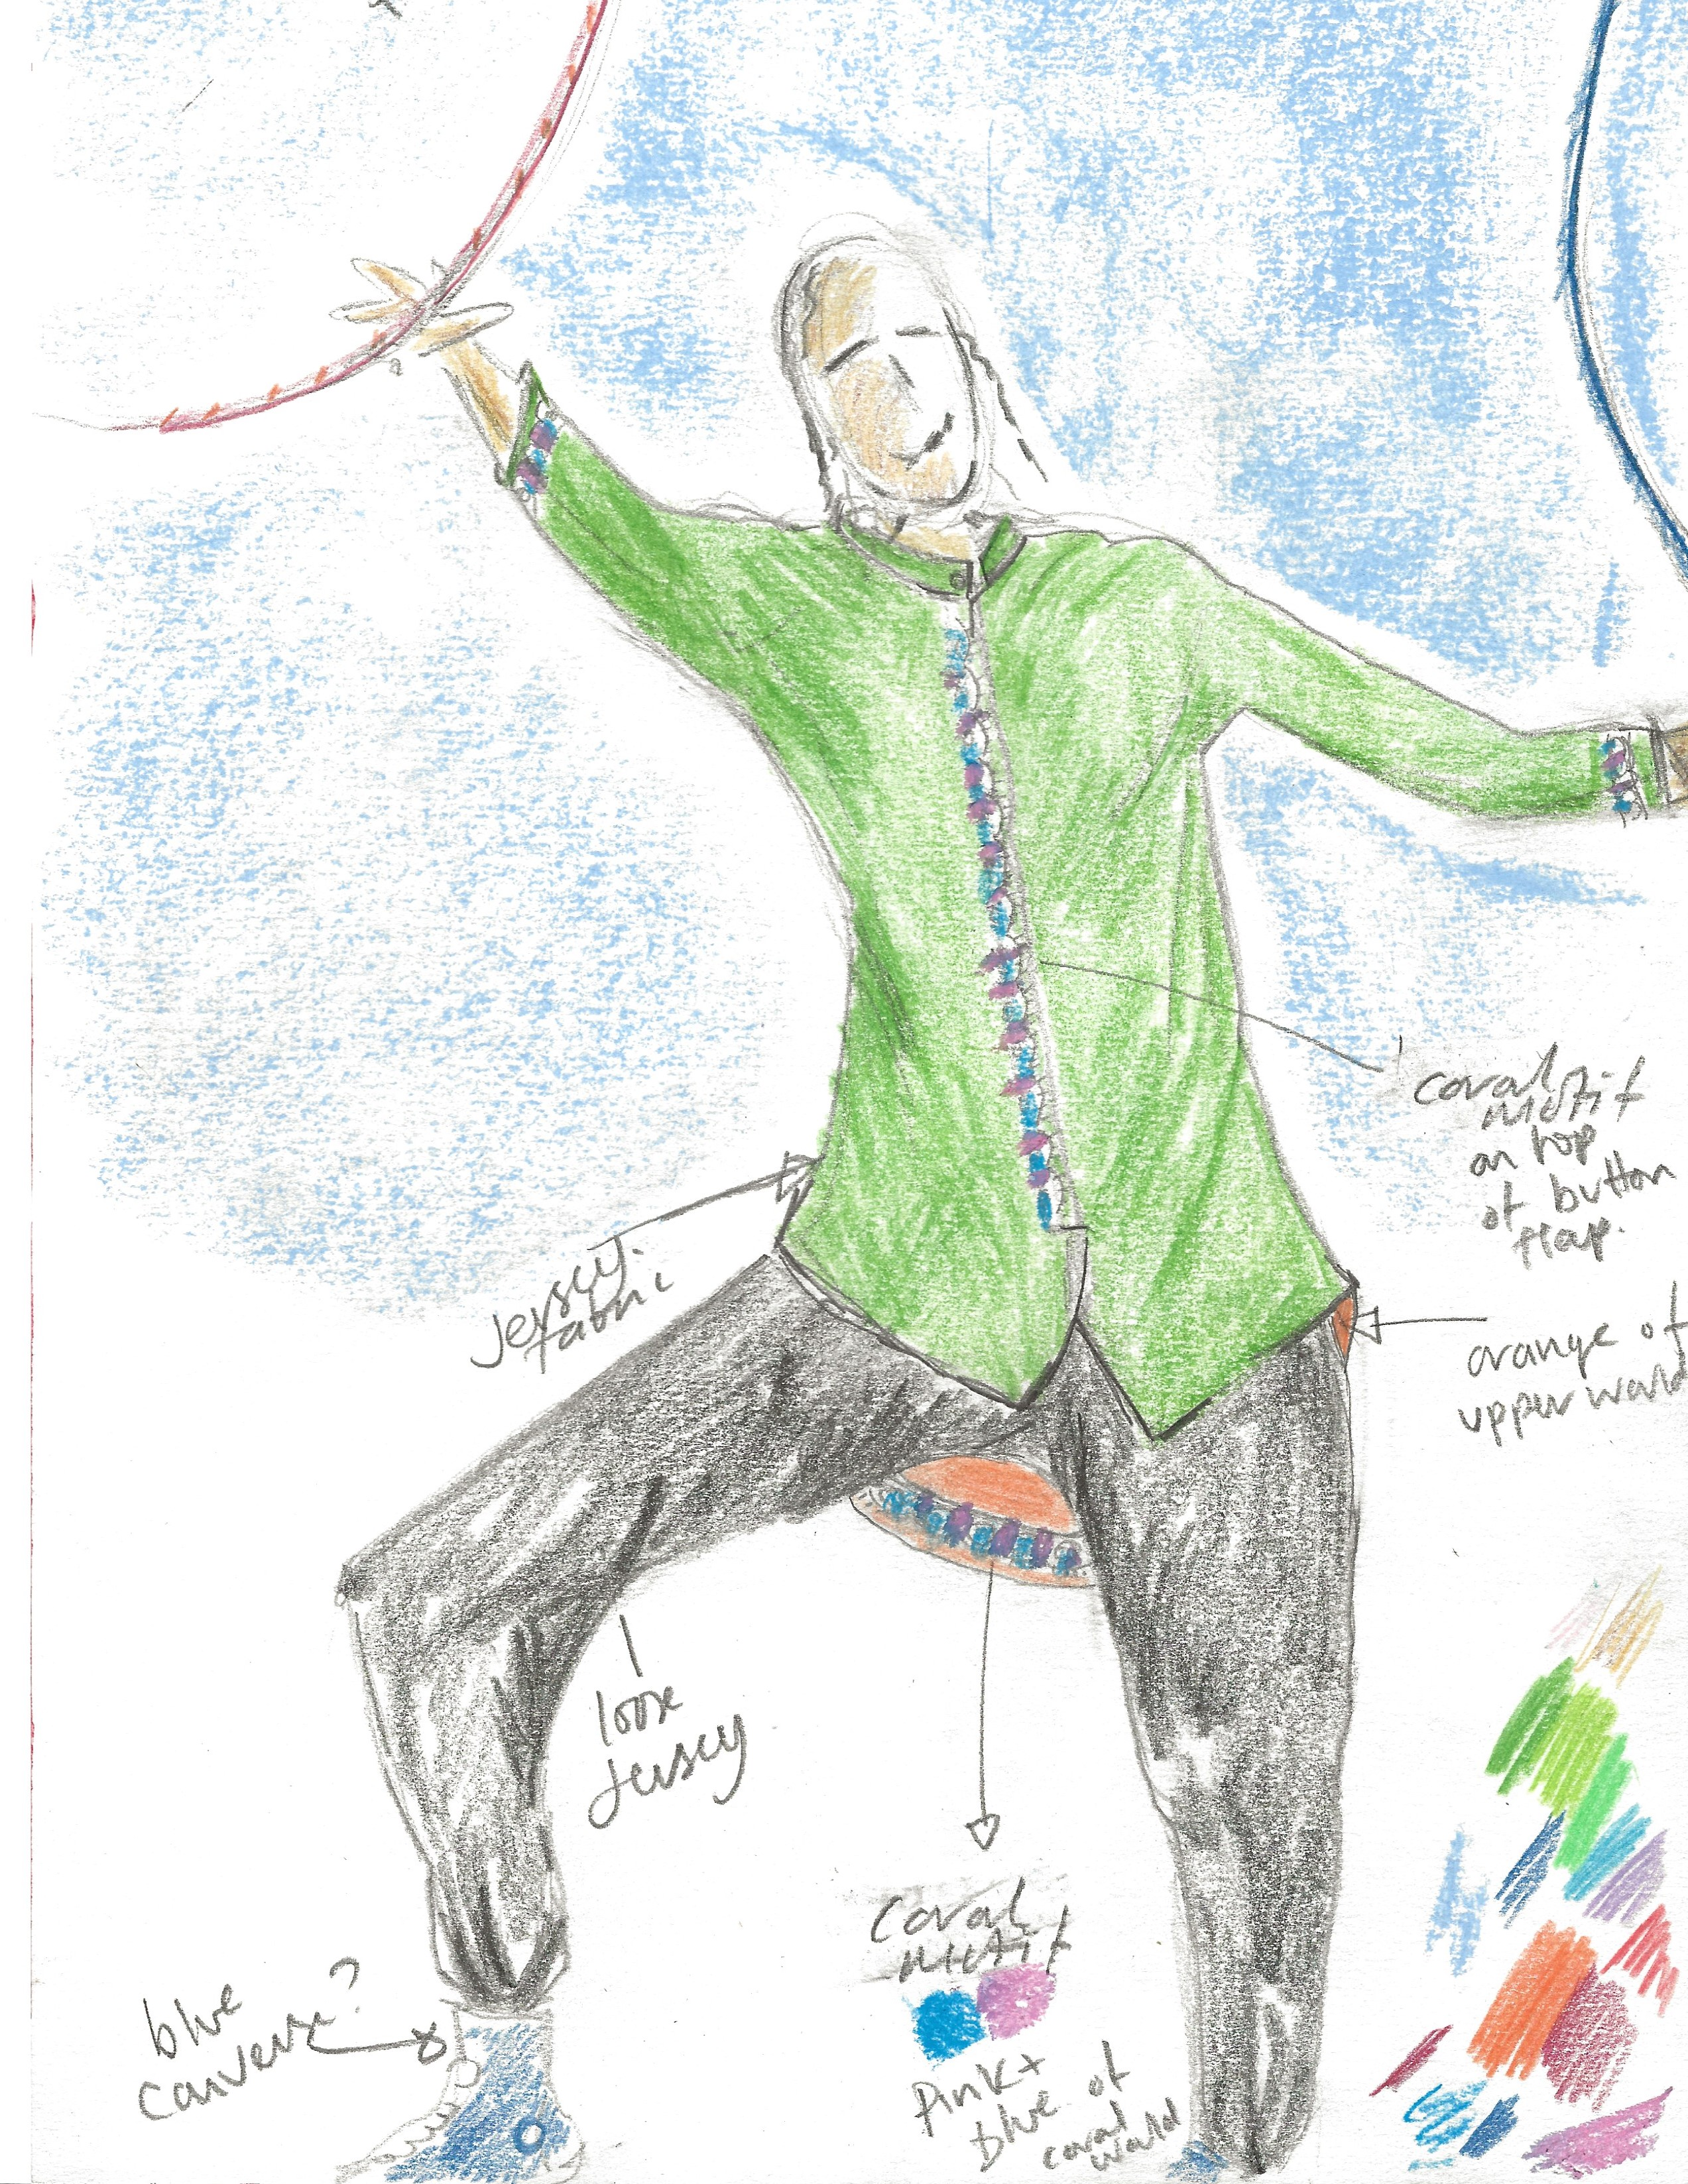 Splash by Extraordinary Bodies - Costume design illustrations by Laura Guthrie - A circus performer reaching for an aerial hoop, wearing black trousers, a long green tunic with coral details on the buttons.